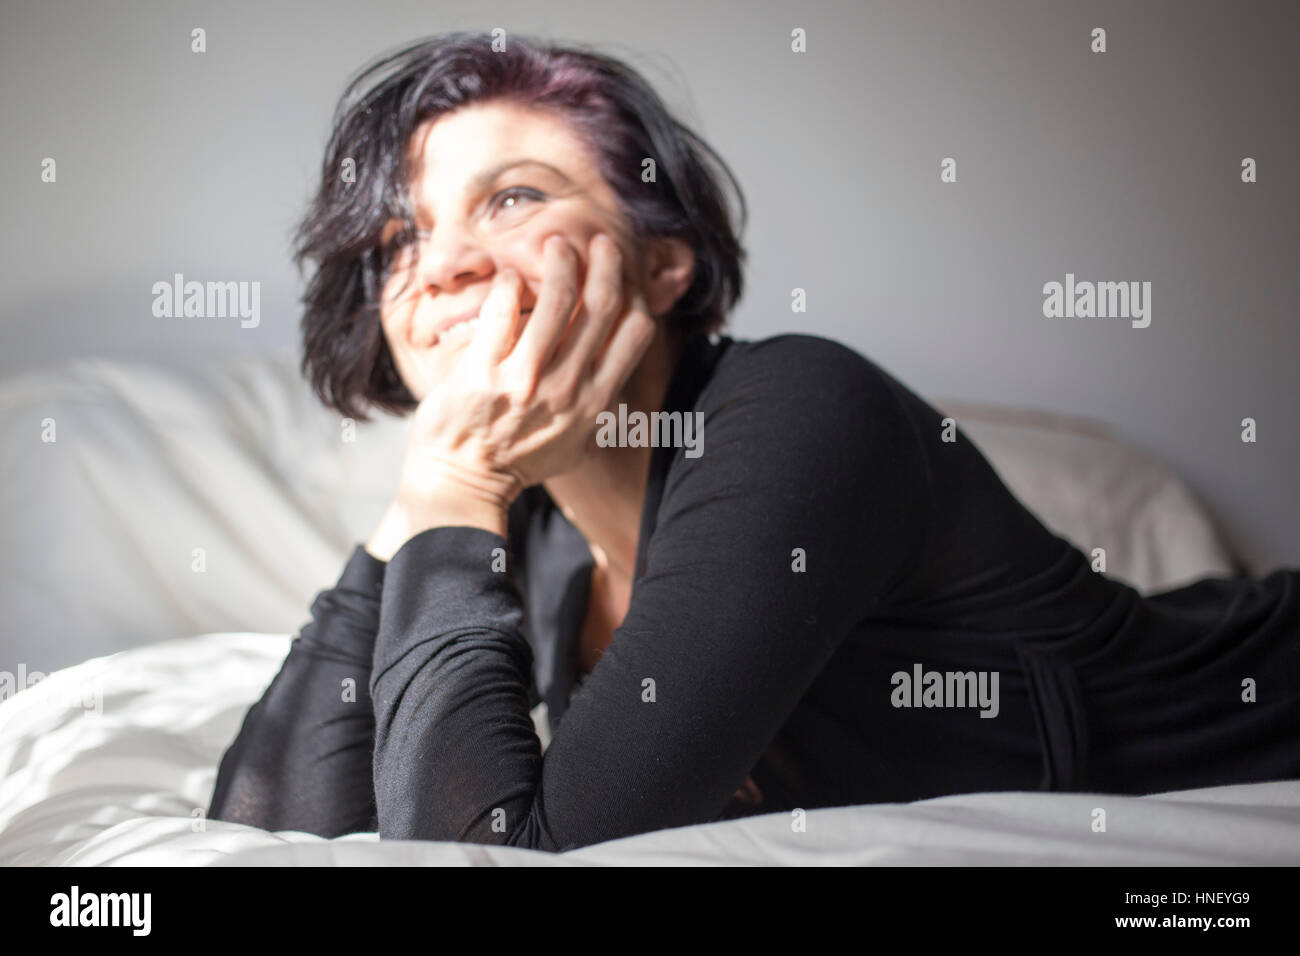 Unfocused shot of a smiling woman - Stock Image